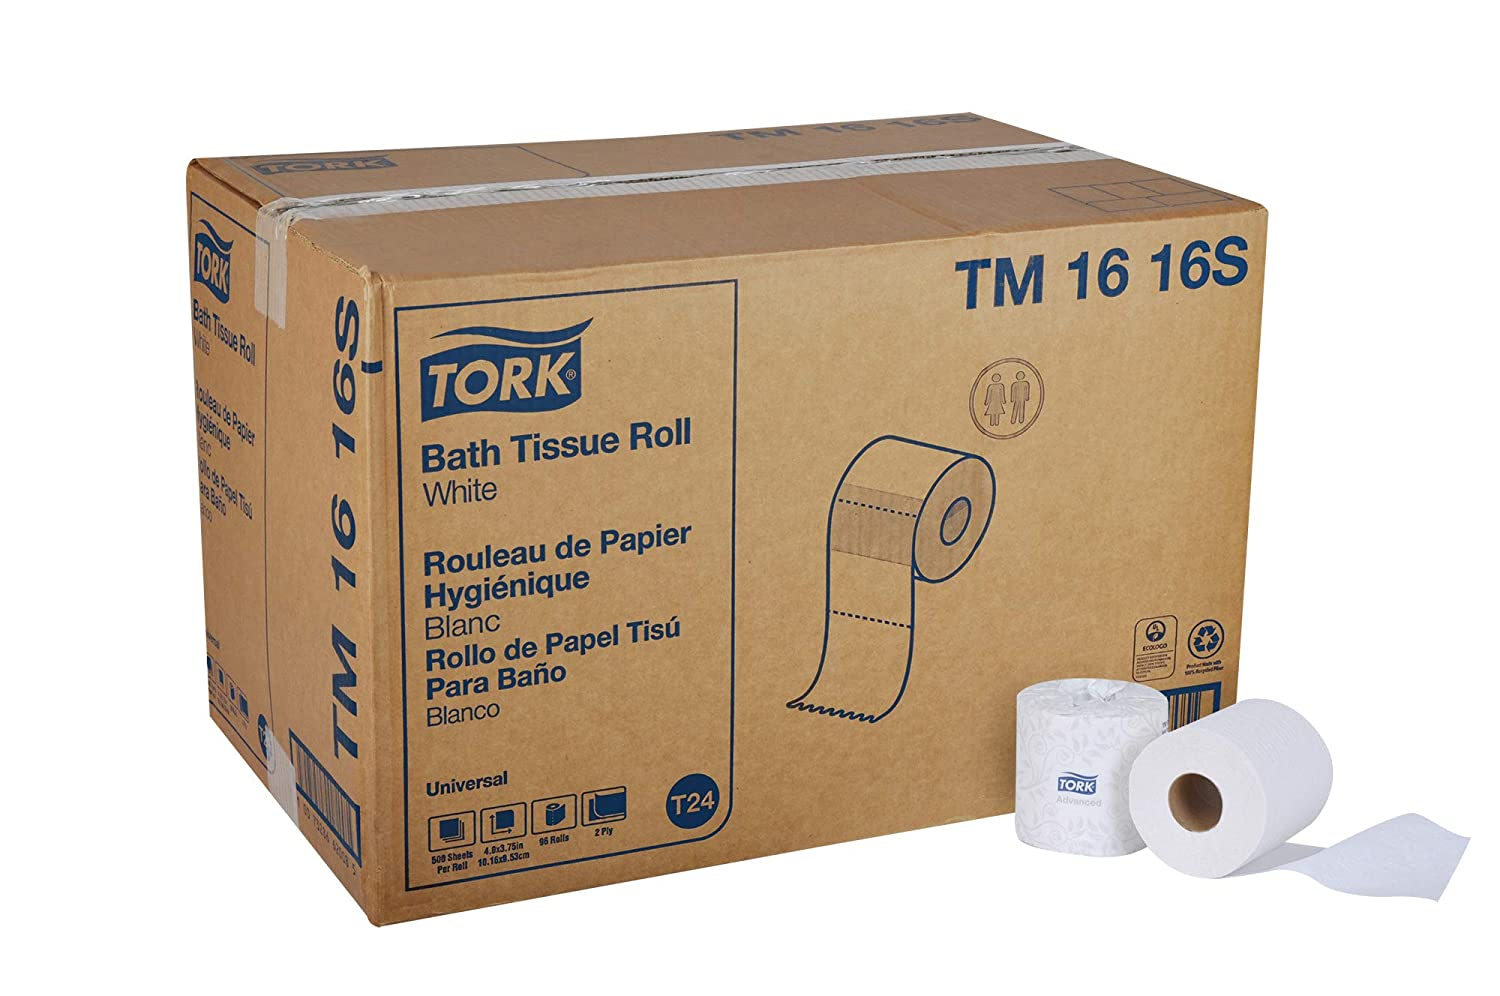 Tork Universal TM1616S Bath Tissue Roll 2 Ply 4 Width x 3.75 Length White Case of 96 Rolls 500 per Roll 48 000 Sheets